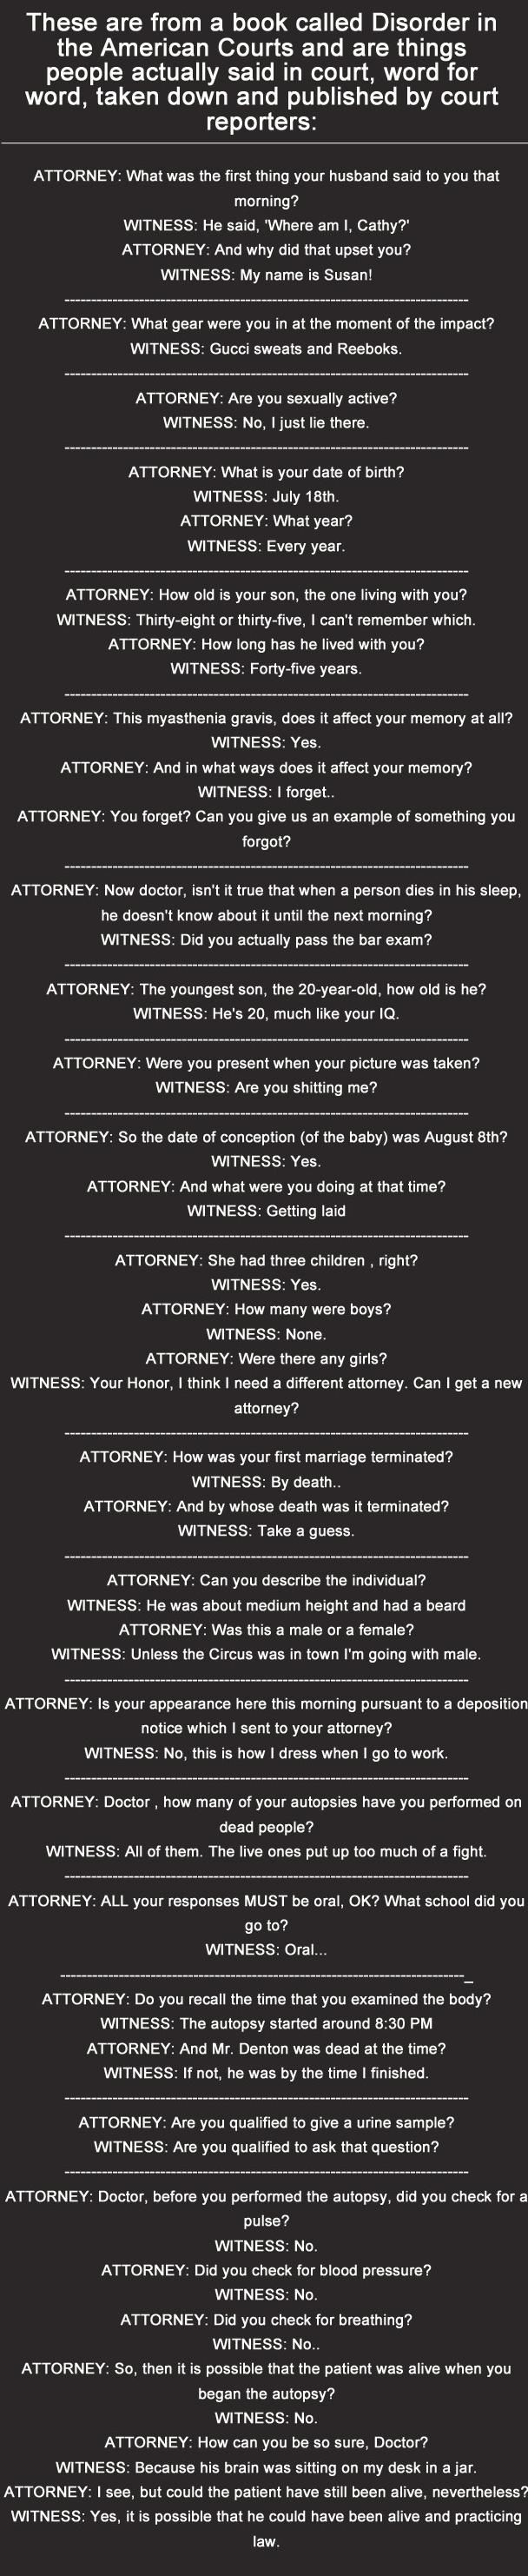 Things said in court